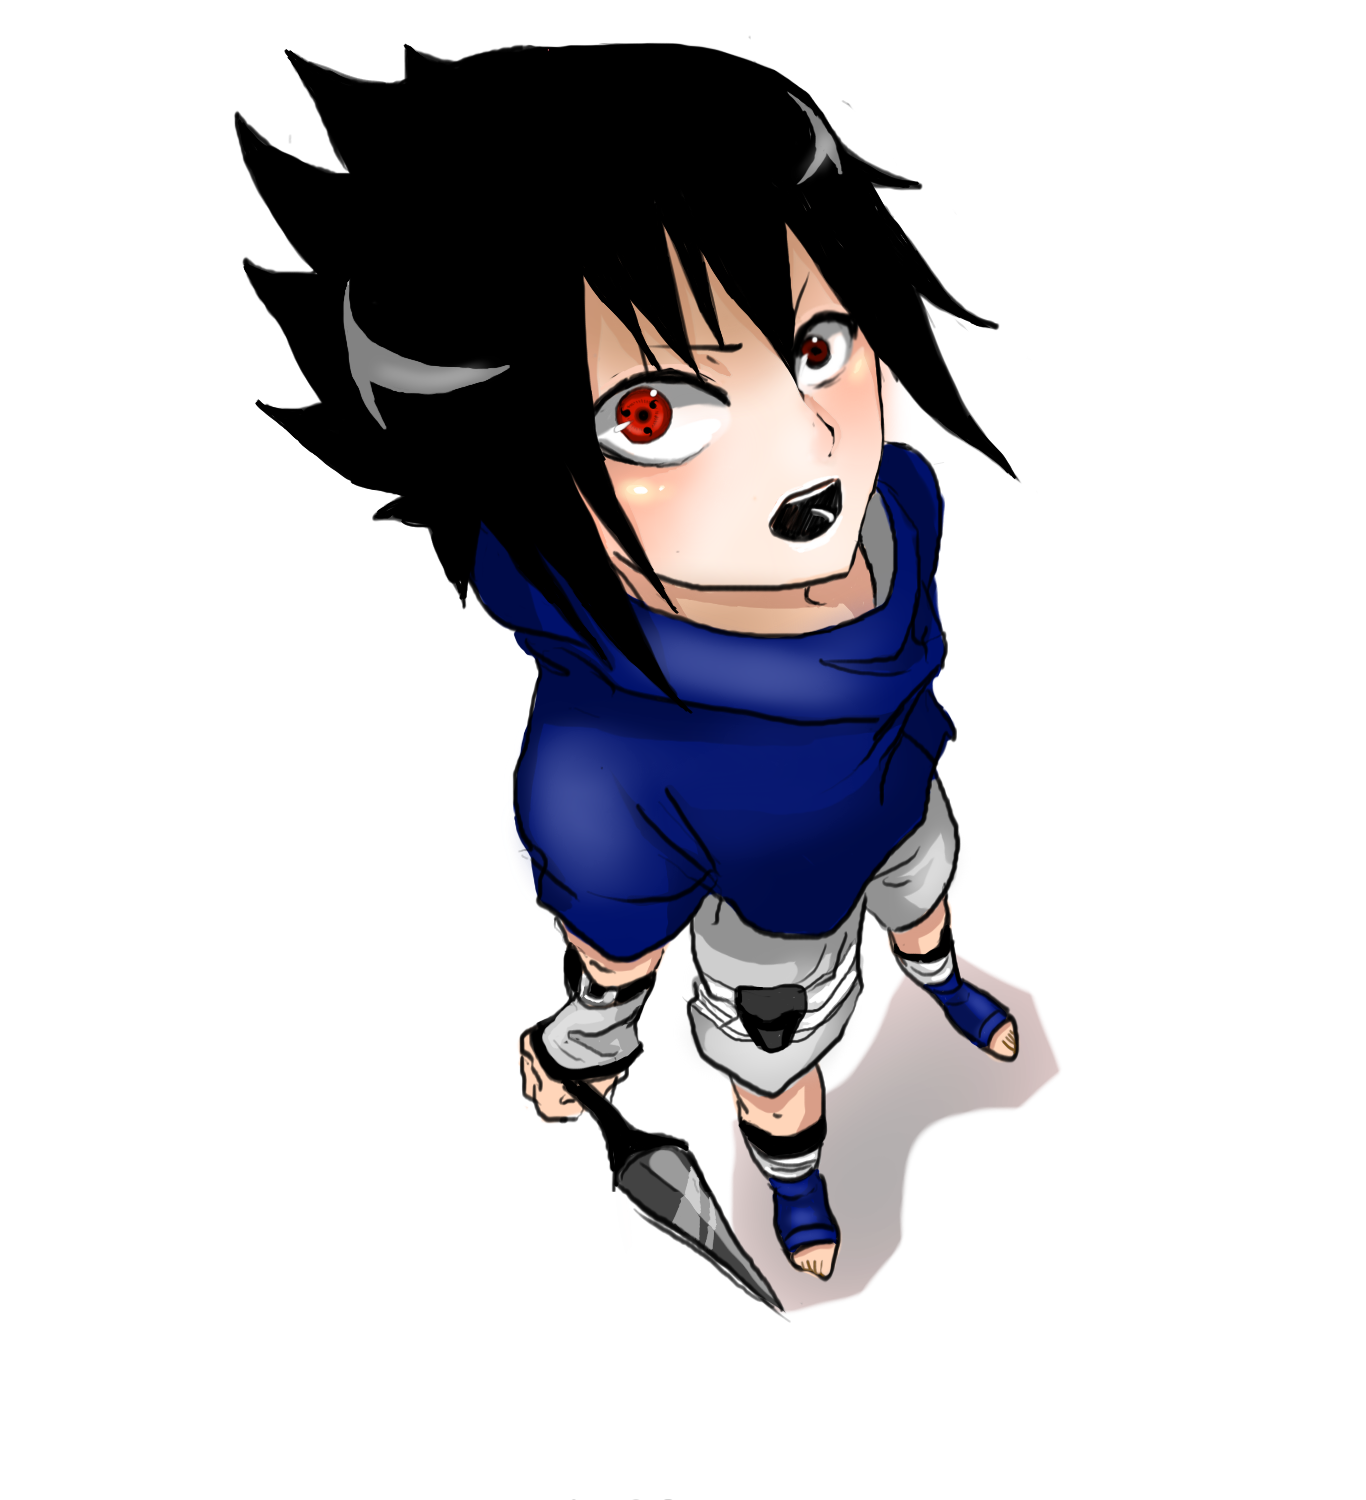 Sasuke Chibi Sharingan by TheCecile on DeviantArt